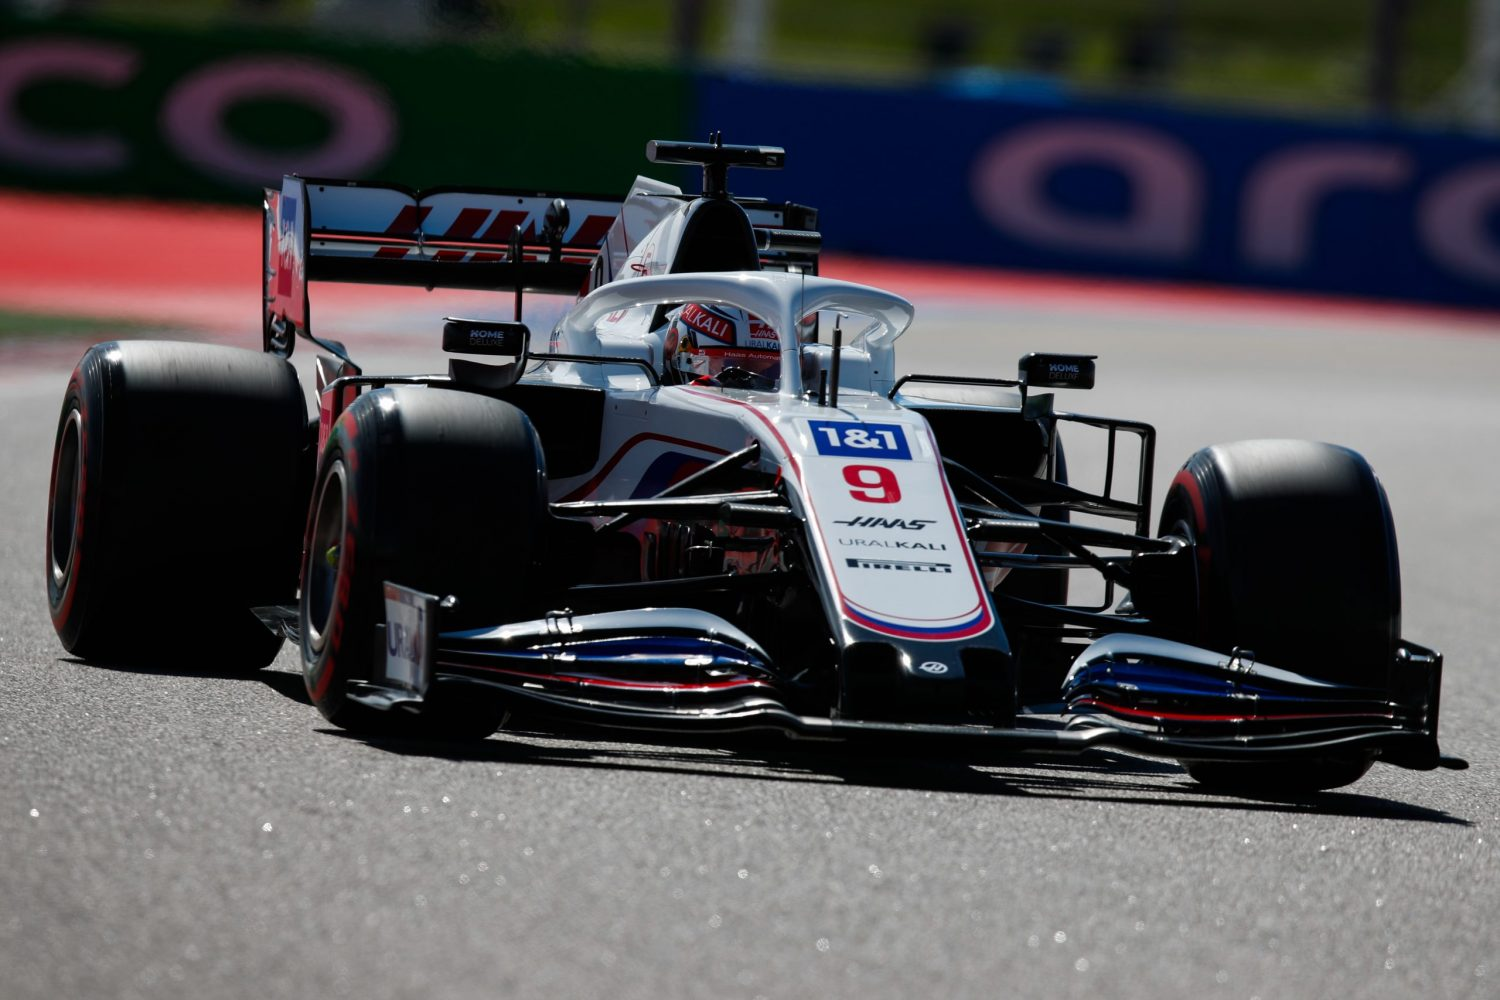 Haas wouldn't be here today without Mazepin – Steiner